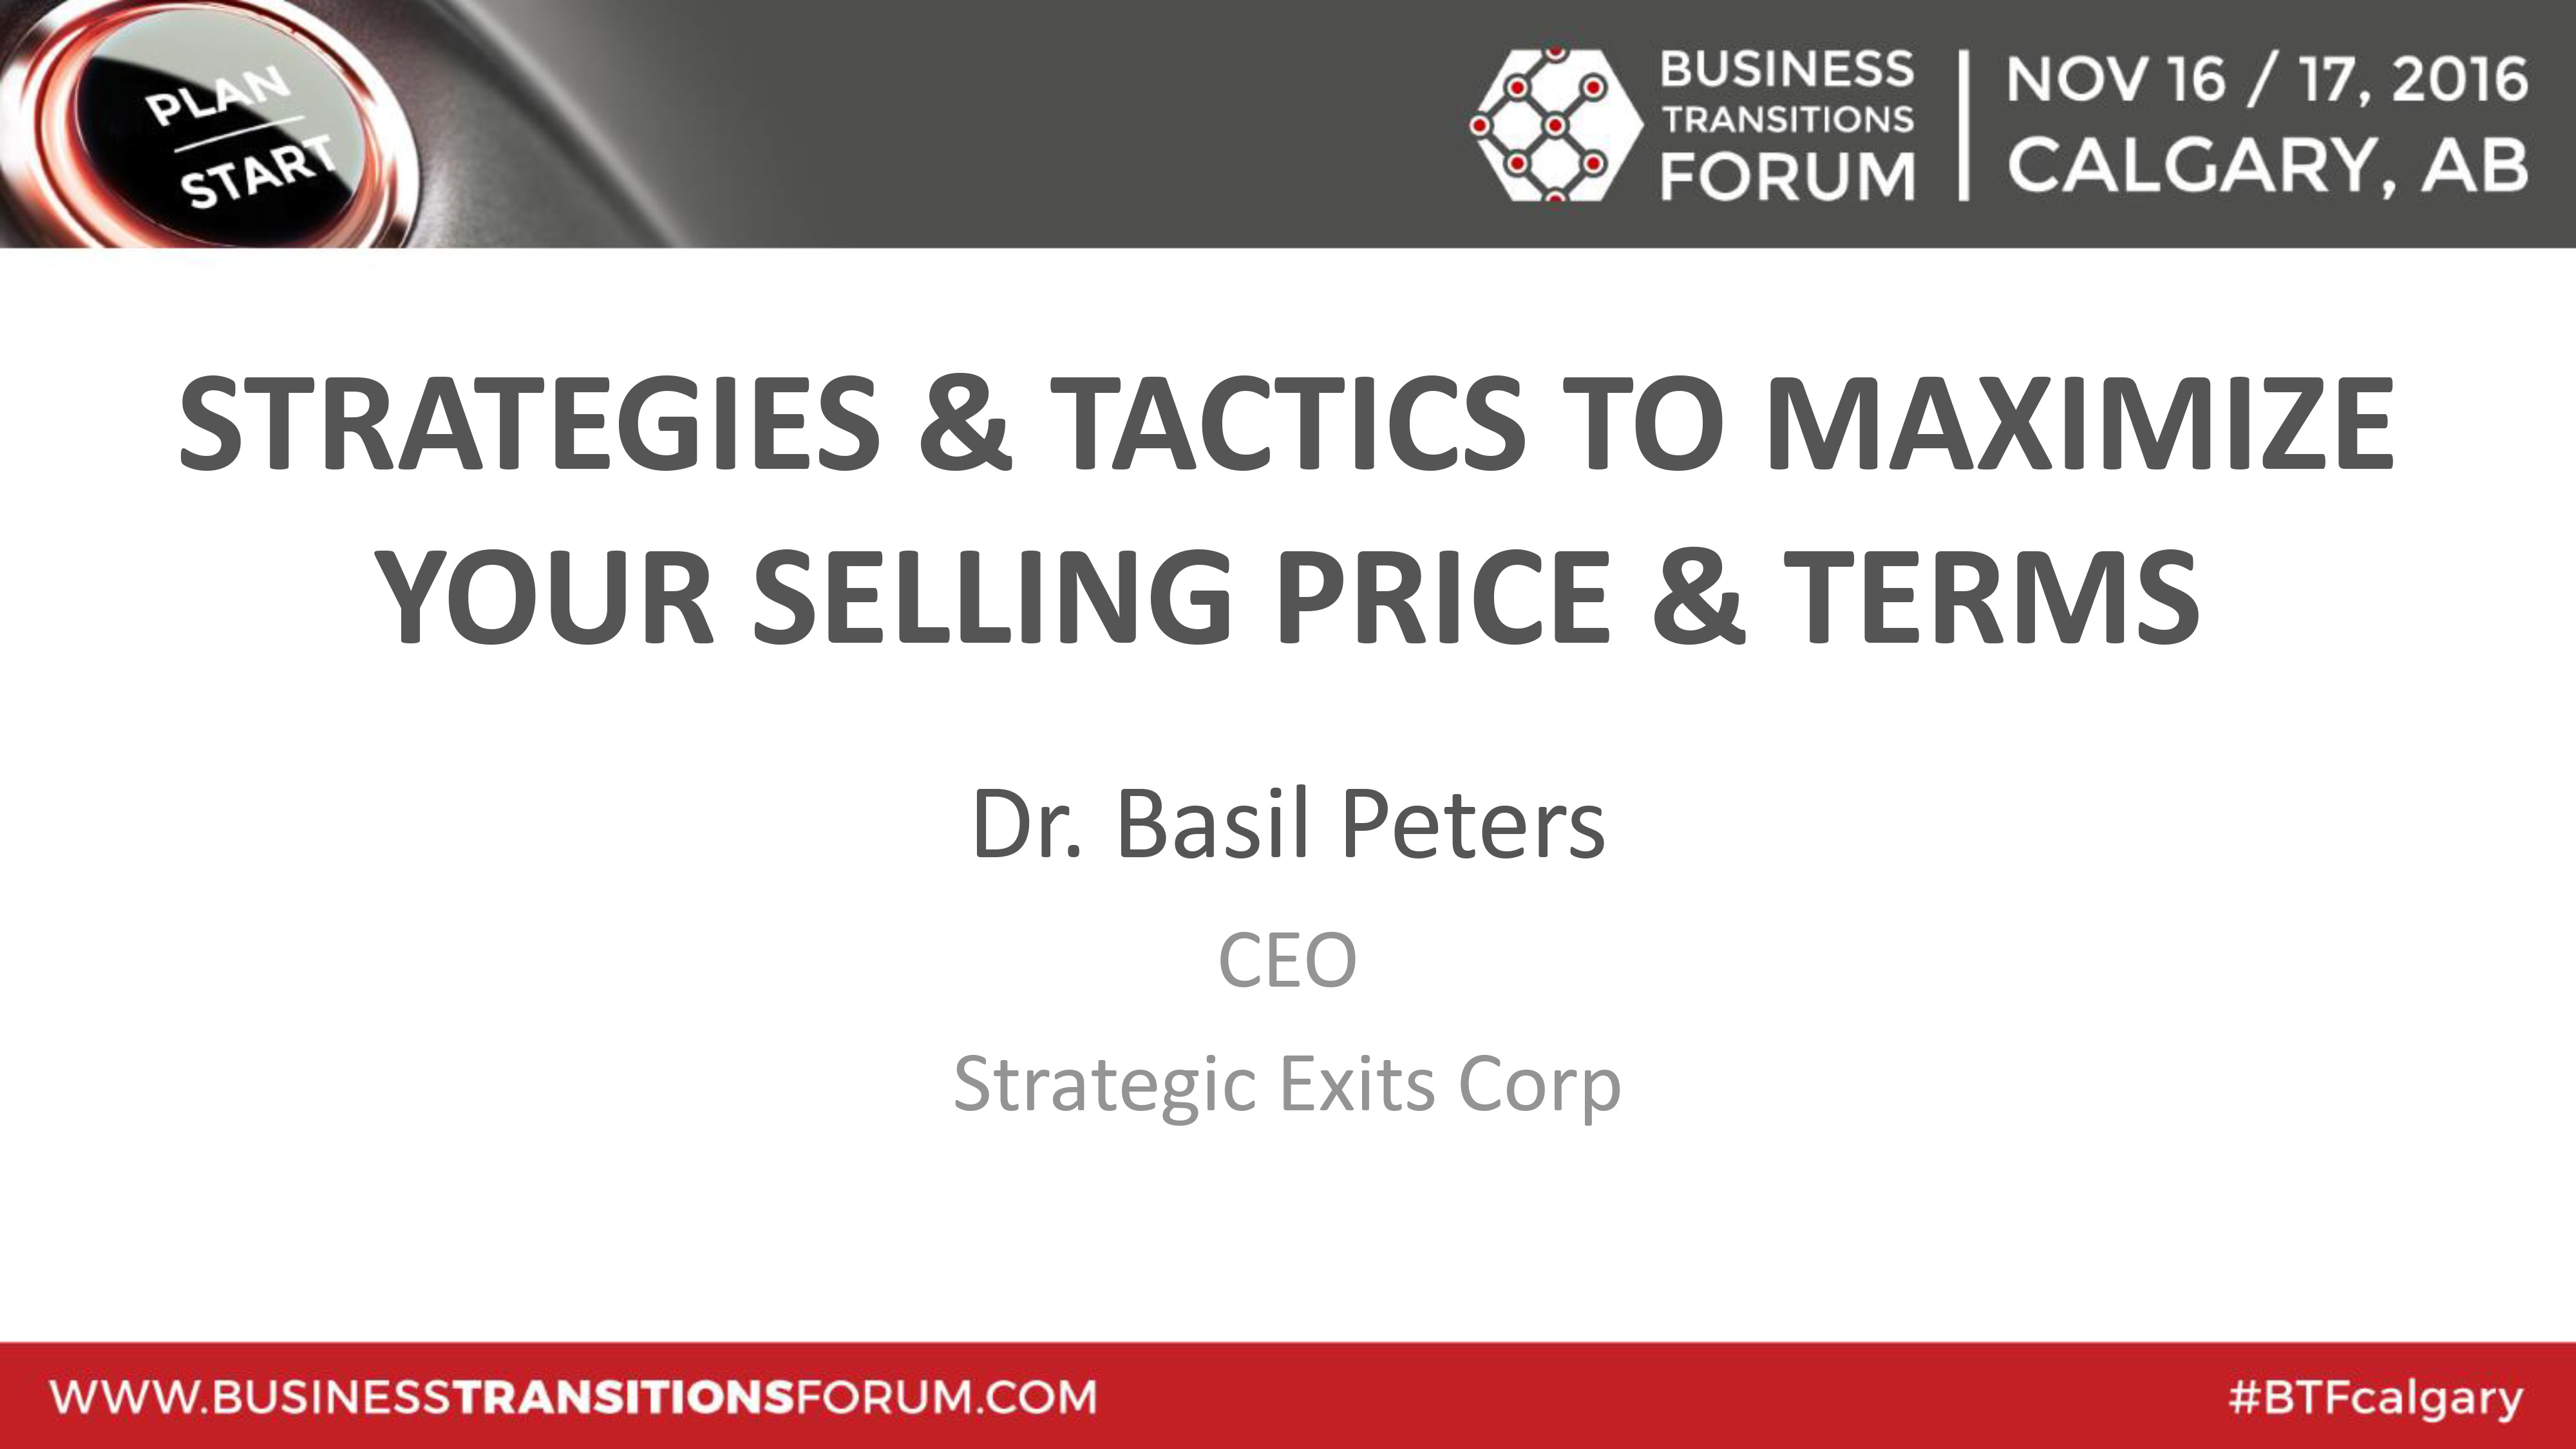 Strategies & Tactics To Maximize Your Selling Price & Terms